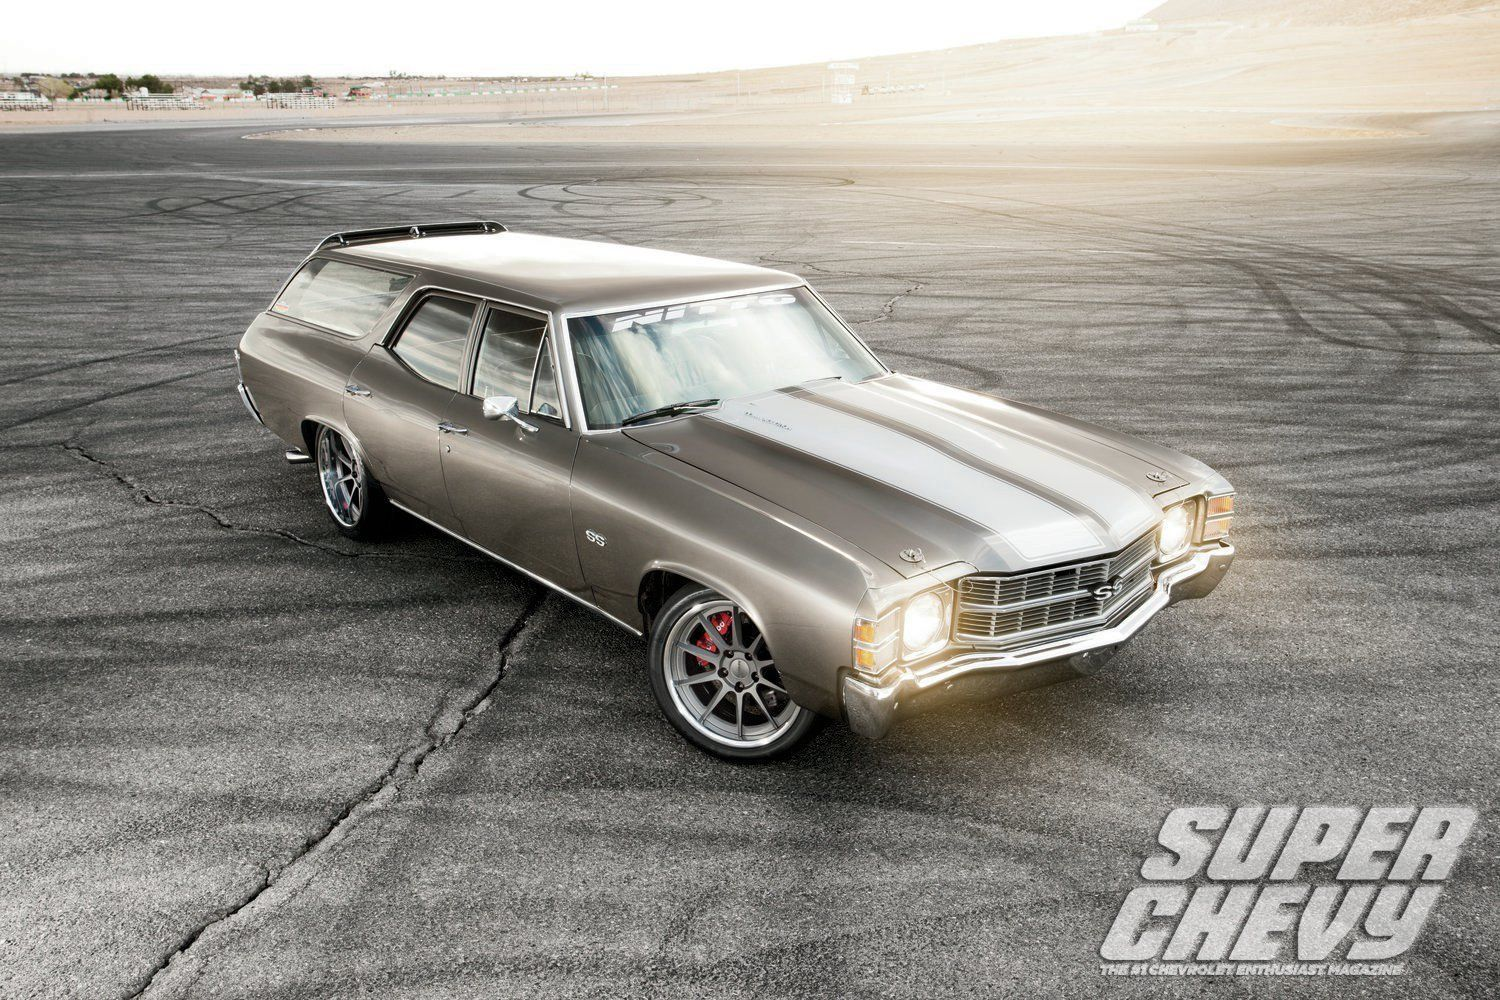 1971 Chevrolet Malibu | Steve Rupp's Pro-Touring 1971 Chevelle Malibu Wagon on Forgeline RB3C Wheels